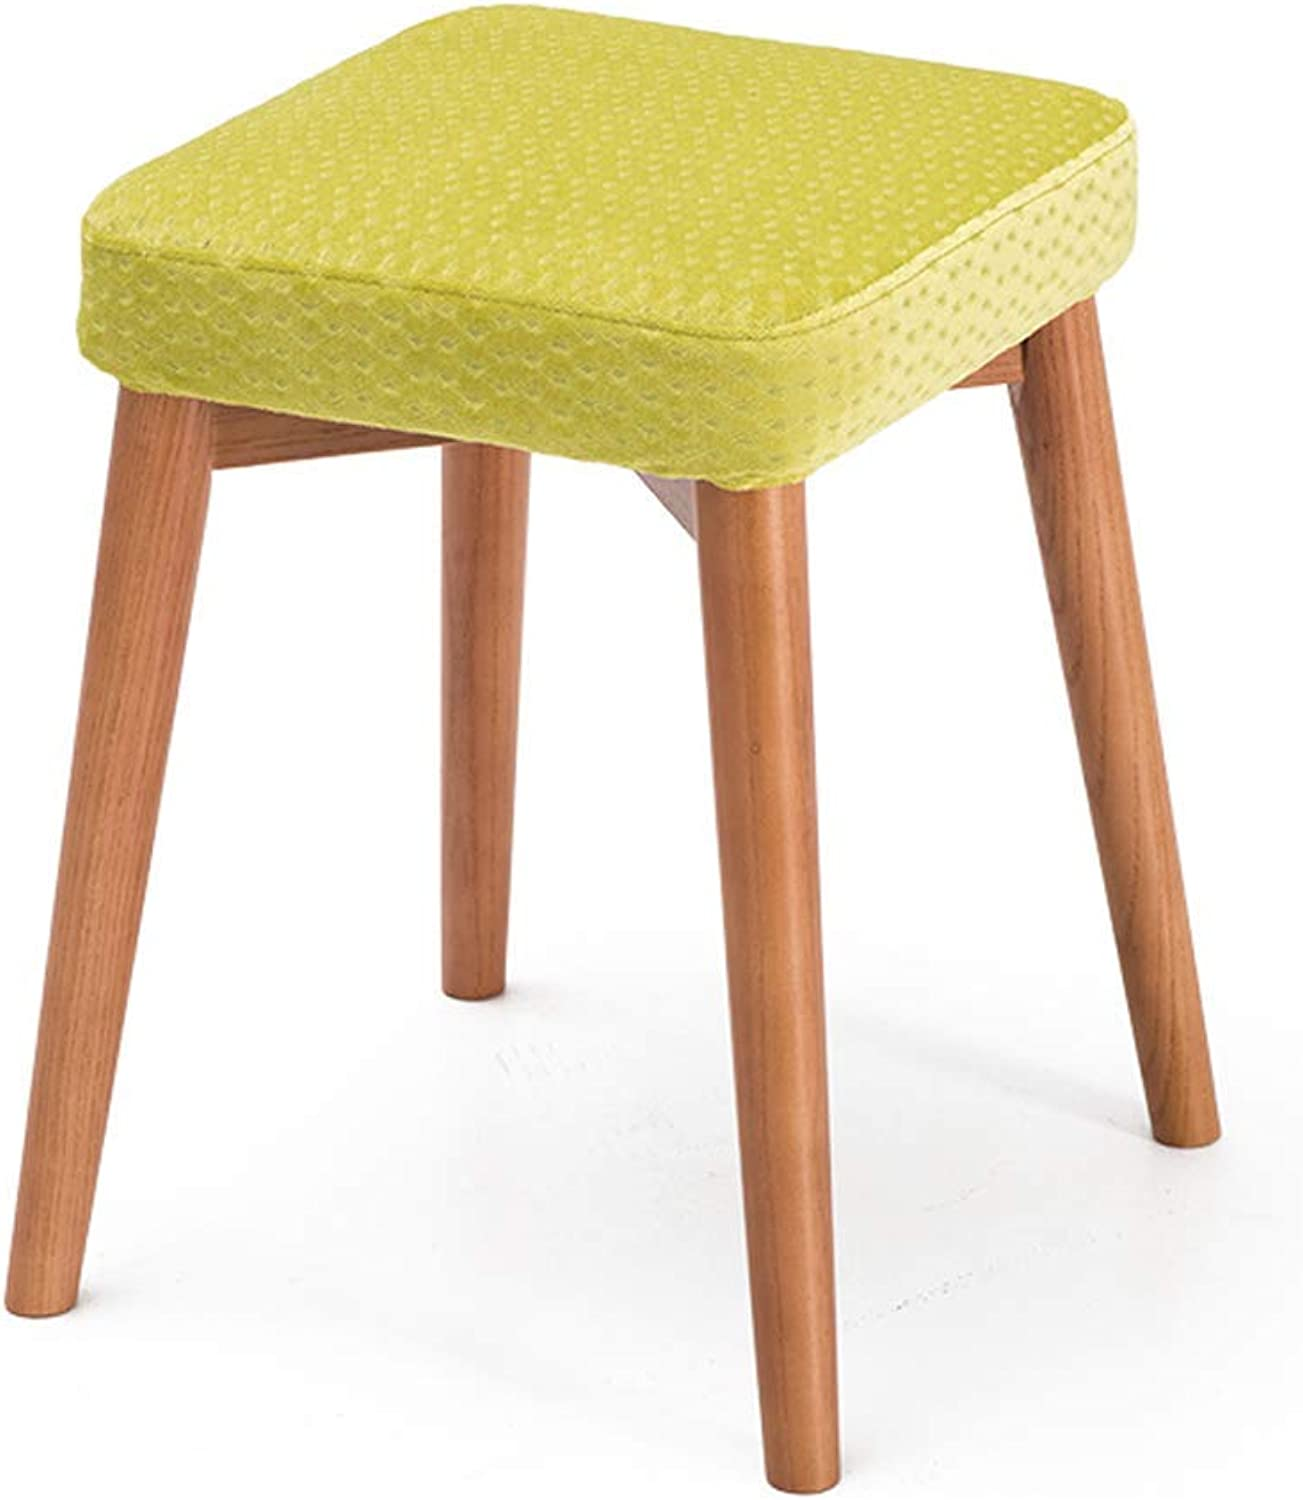 Carl Artbay Solid Wooden Dining Stool Square Stool Can Be Stacked Stool Creative Fashion Dressing Stool Cloth Art Dining Table Stool Family Small Bench 1 Strong and Practical